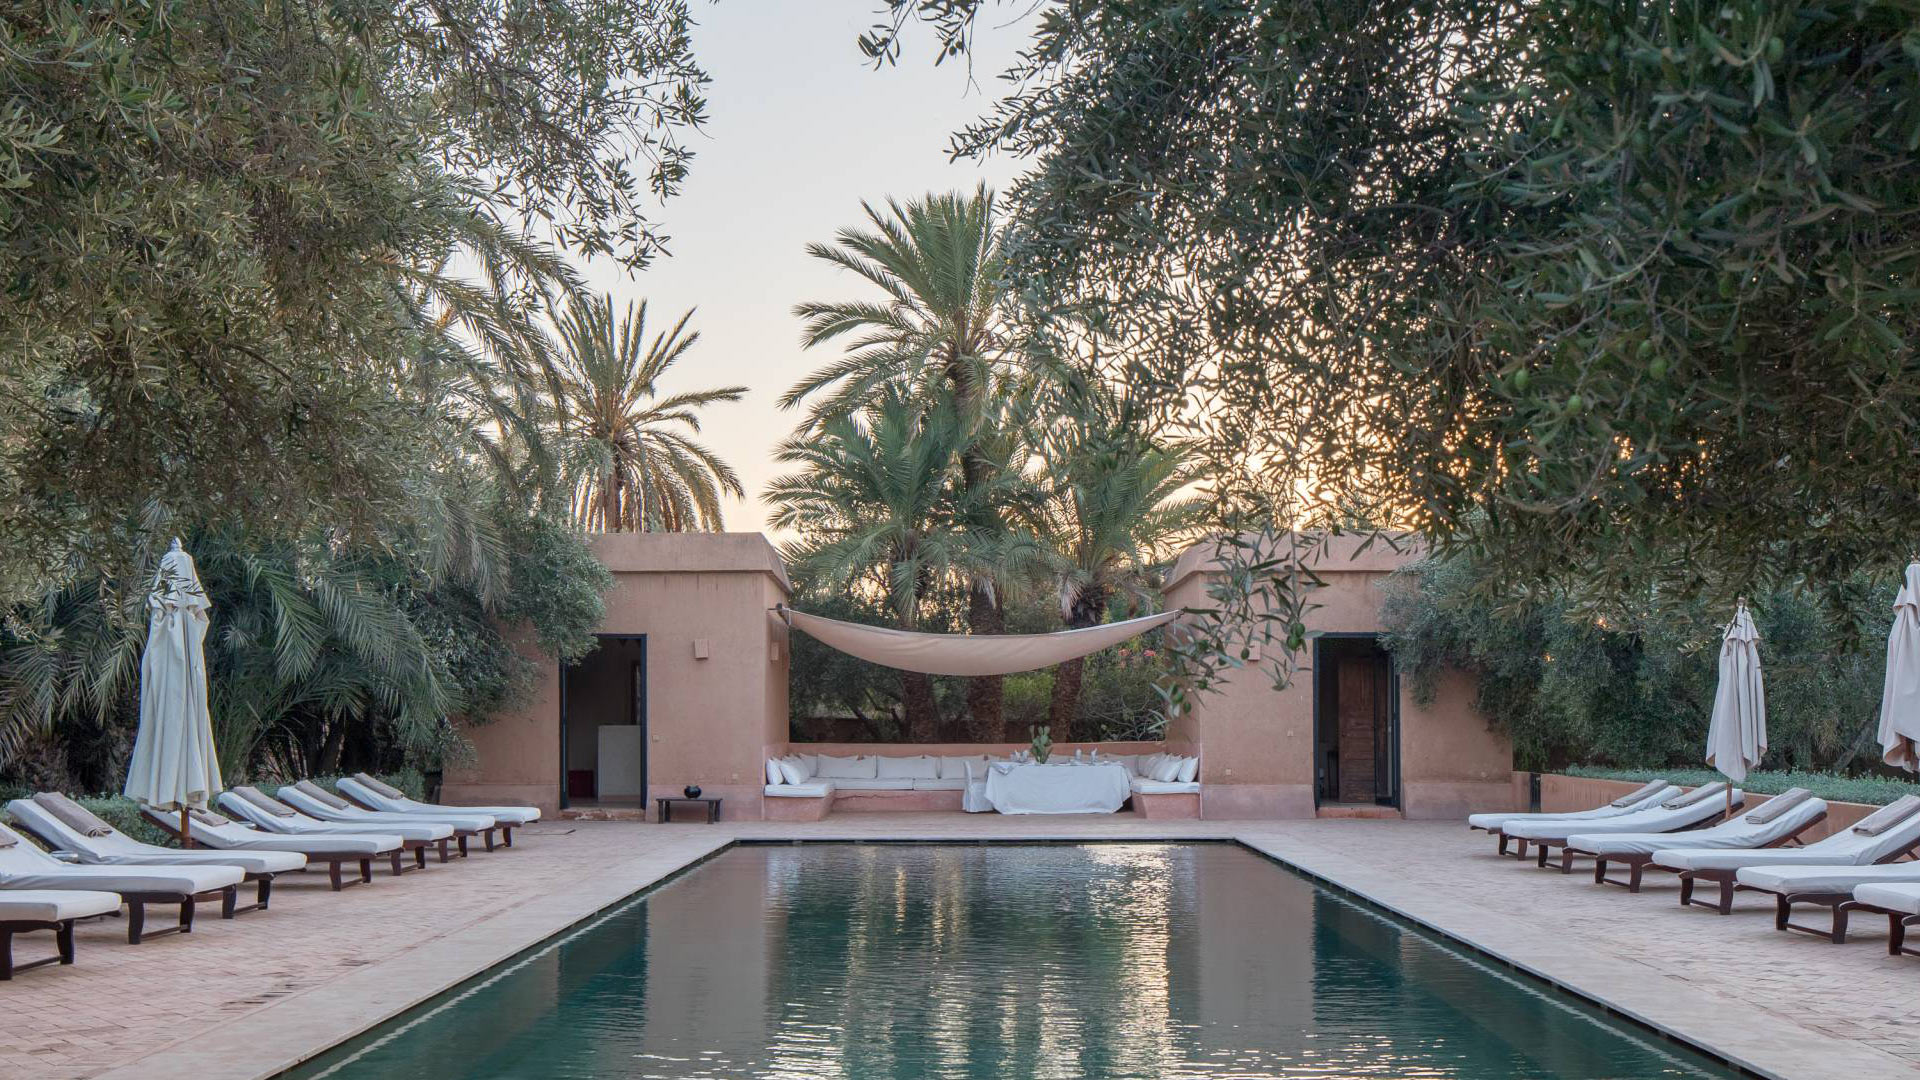 Villa Villa Ursula, Rental in Marrakech